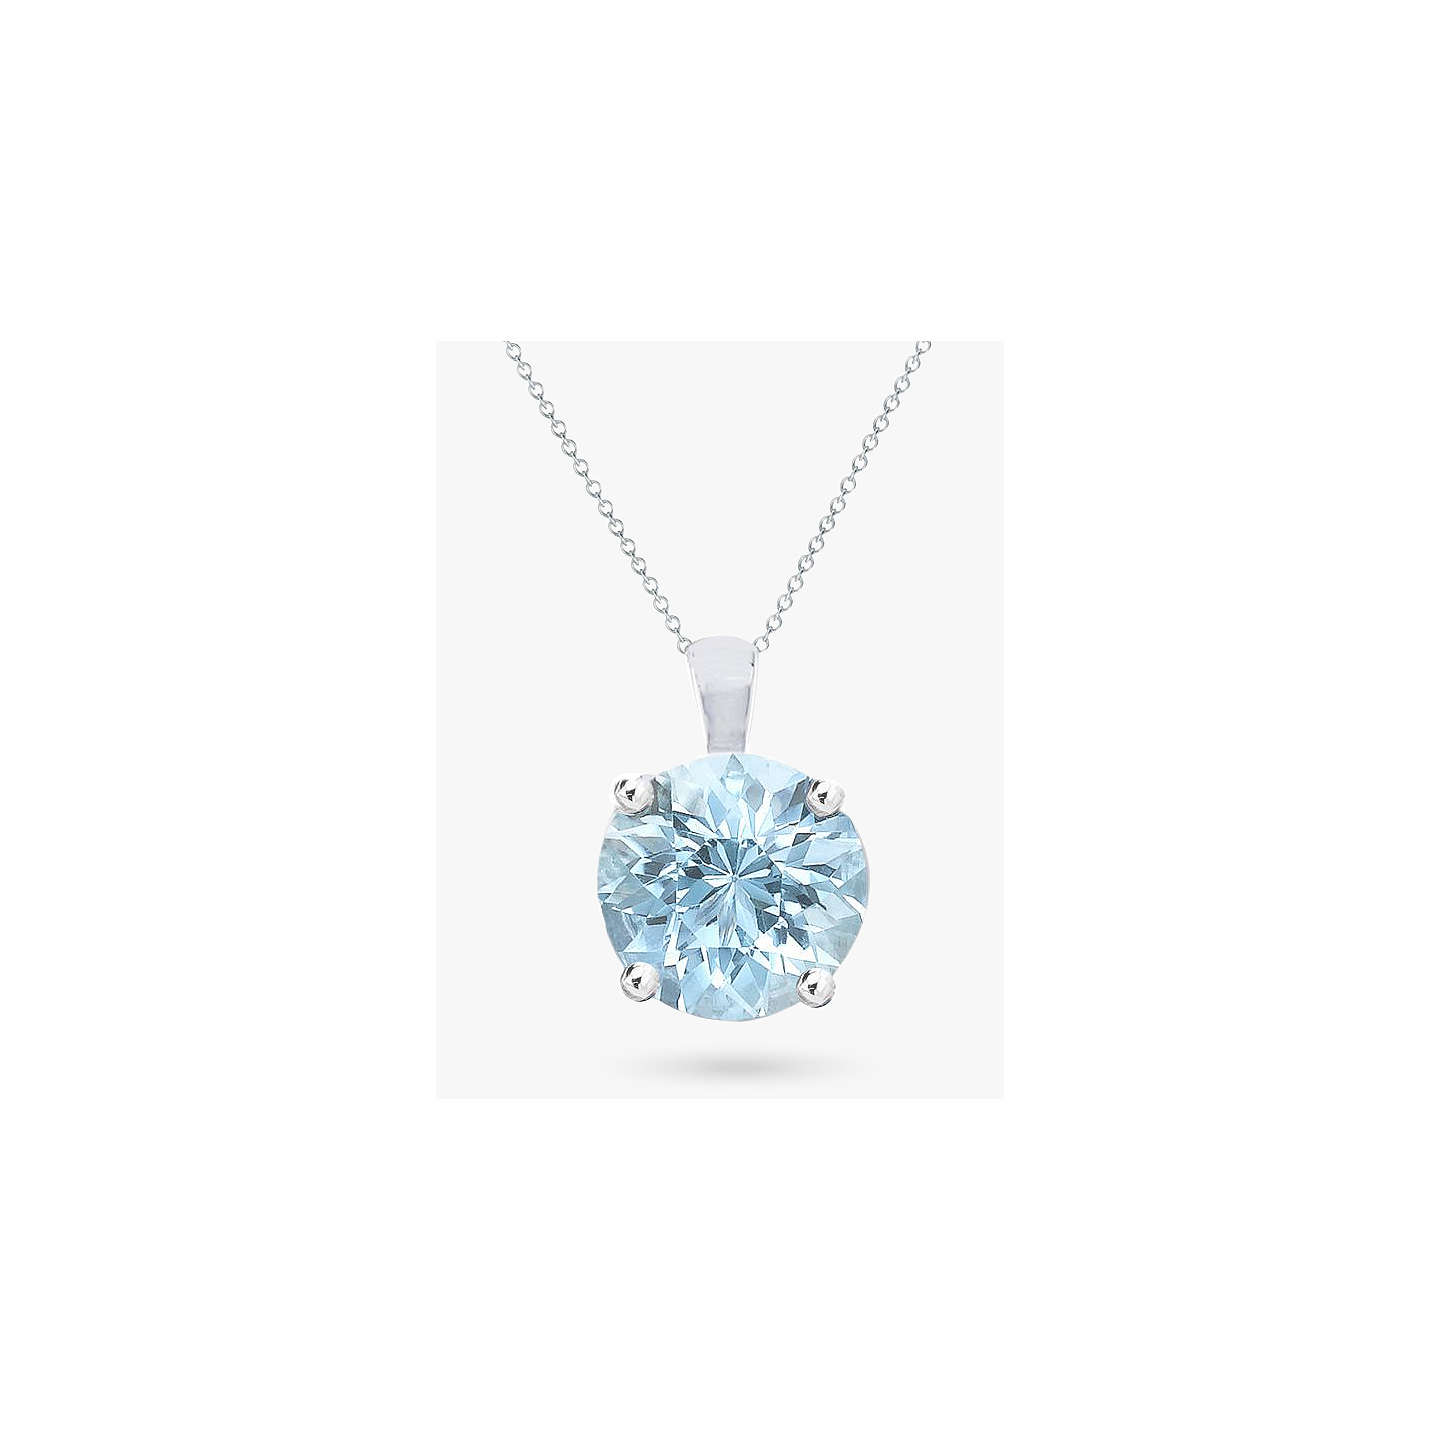 hiho zoom silver pendant aquamarine march necklace aqua birthstone necklaces cz loading sterling marine